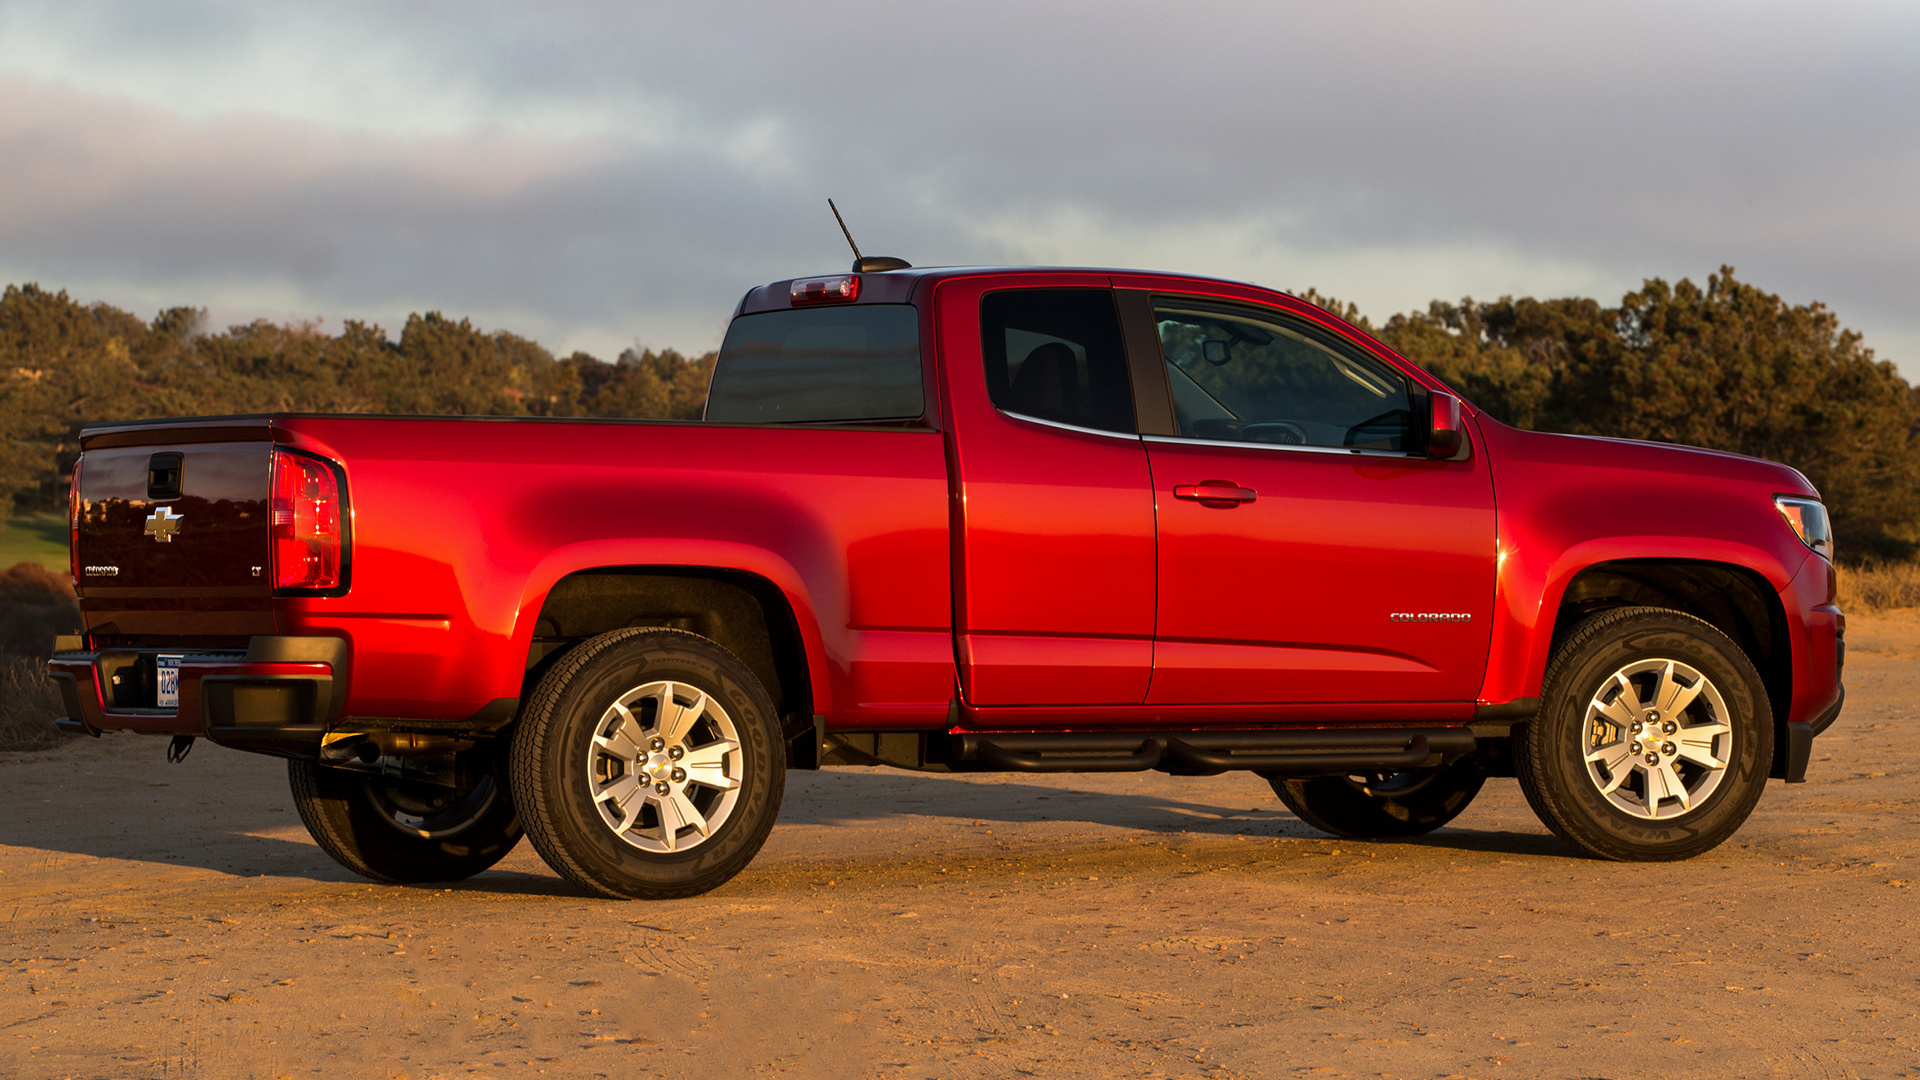 Chevrolet Colorado LT Extended Cab (2015) Wallpapers and HD Images